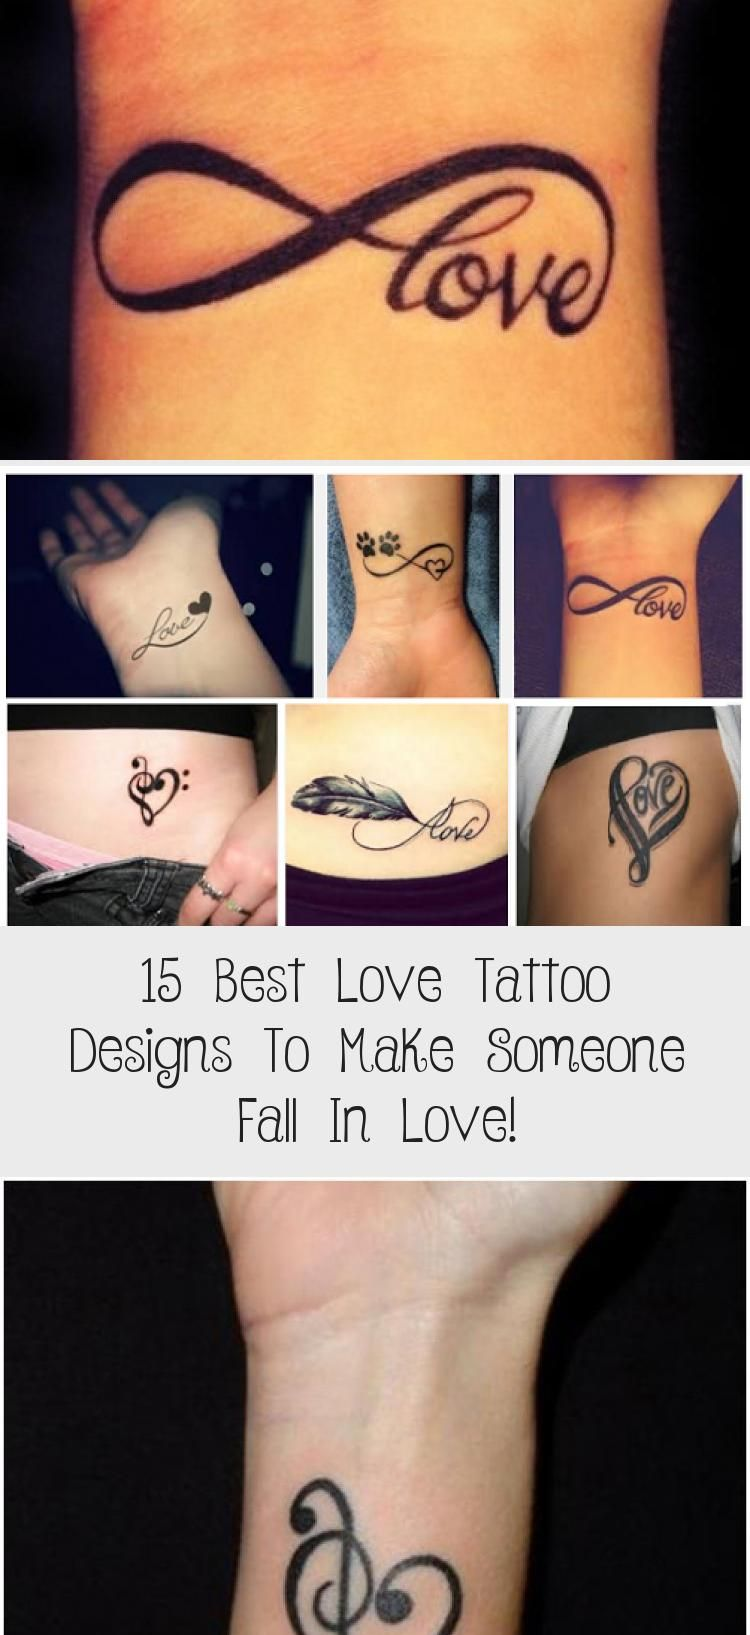 15 Best Love Tattoo Designs To Make Someone Fall In Love In 2020 Love Tattoos Tattoos Tattoo Lettering